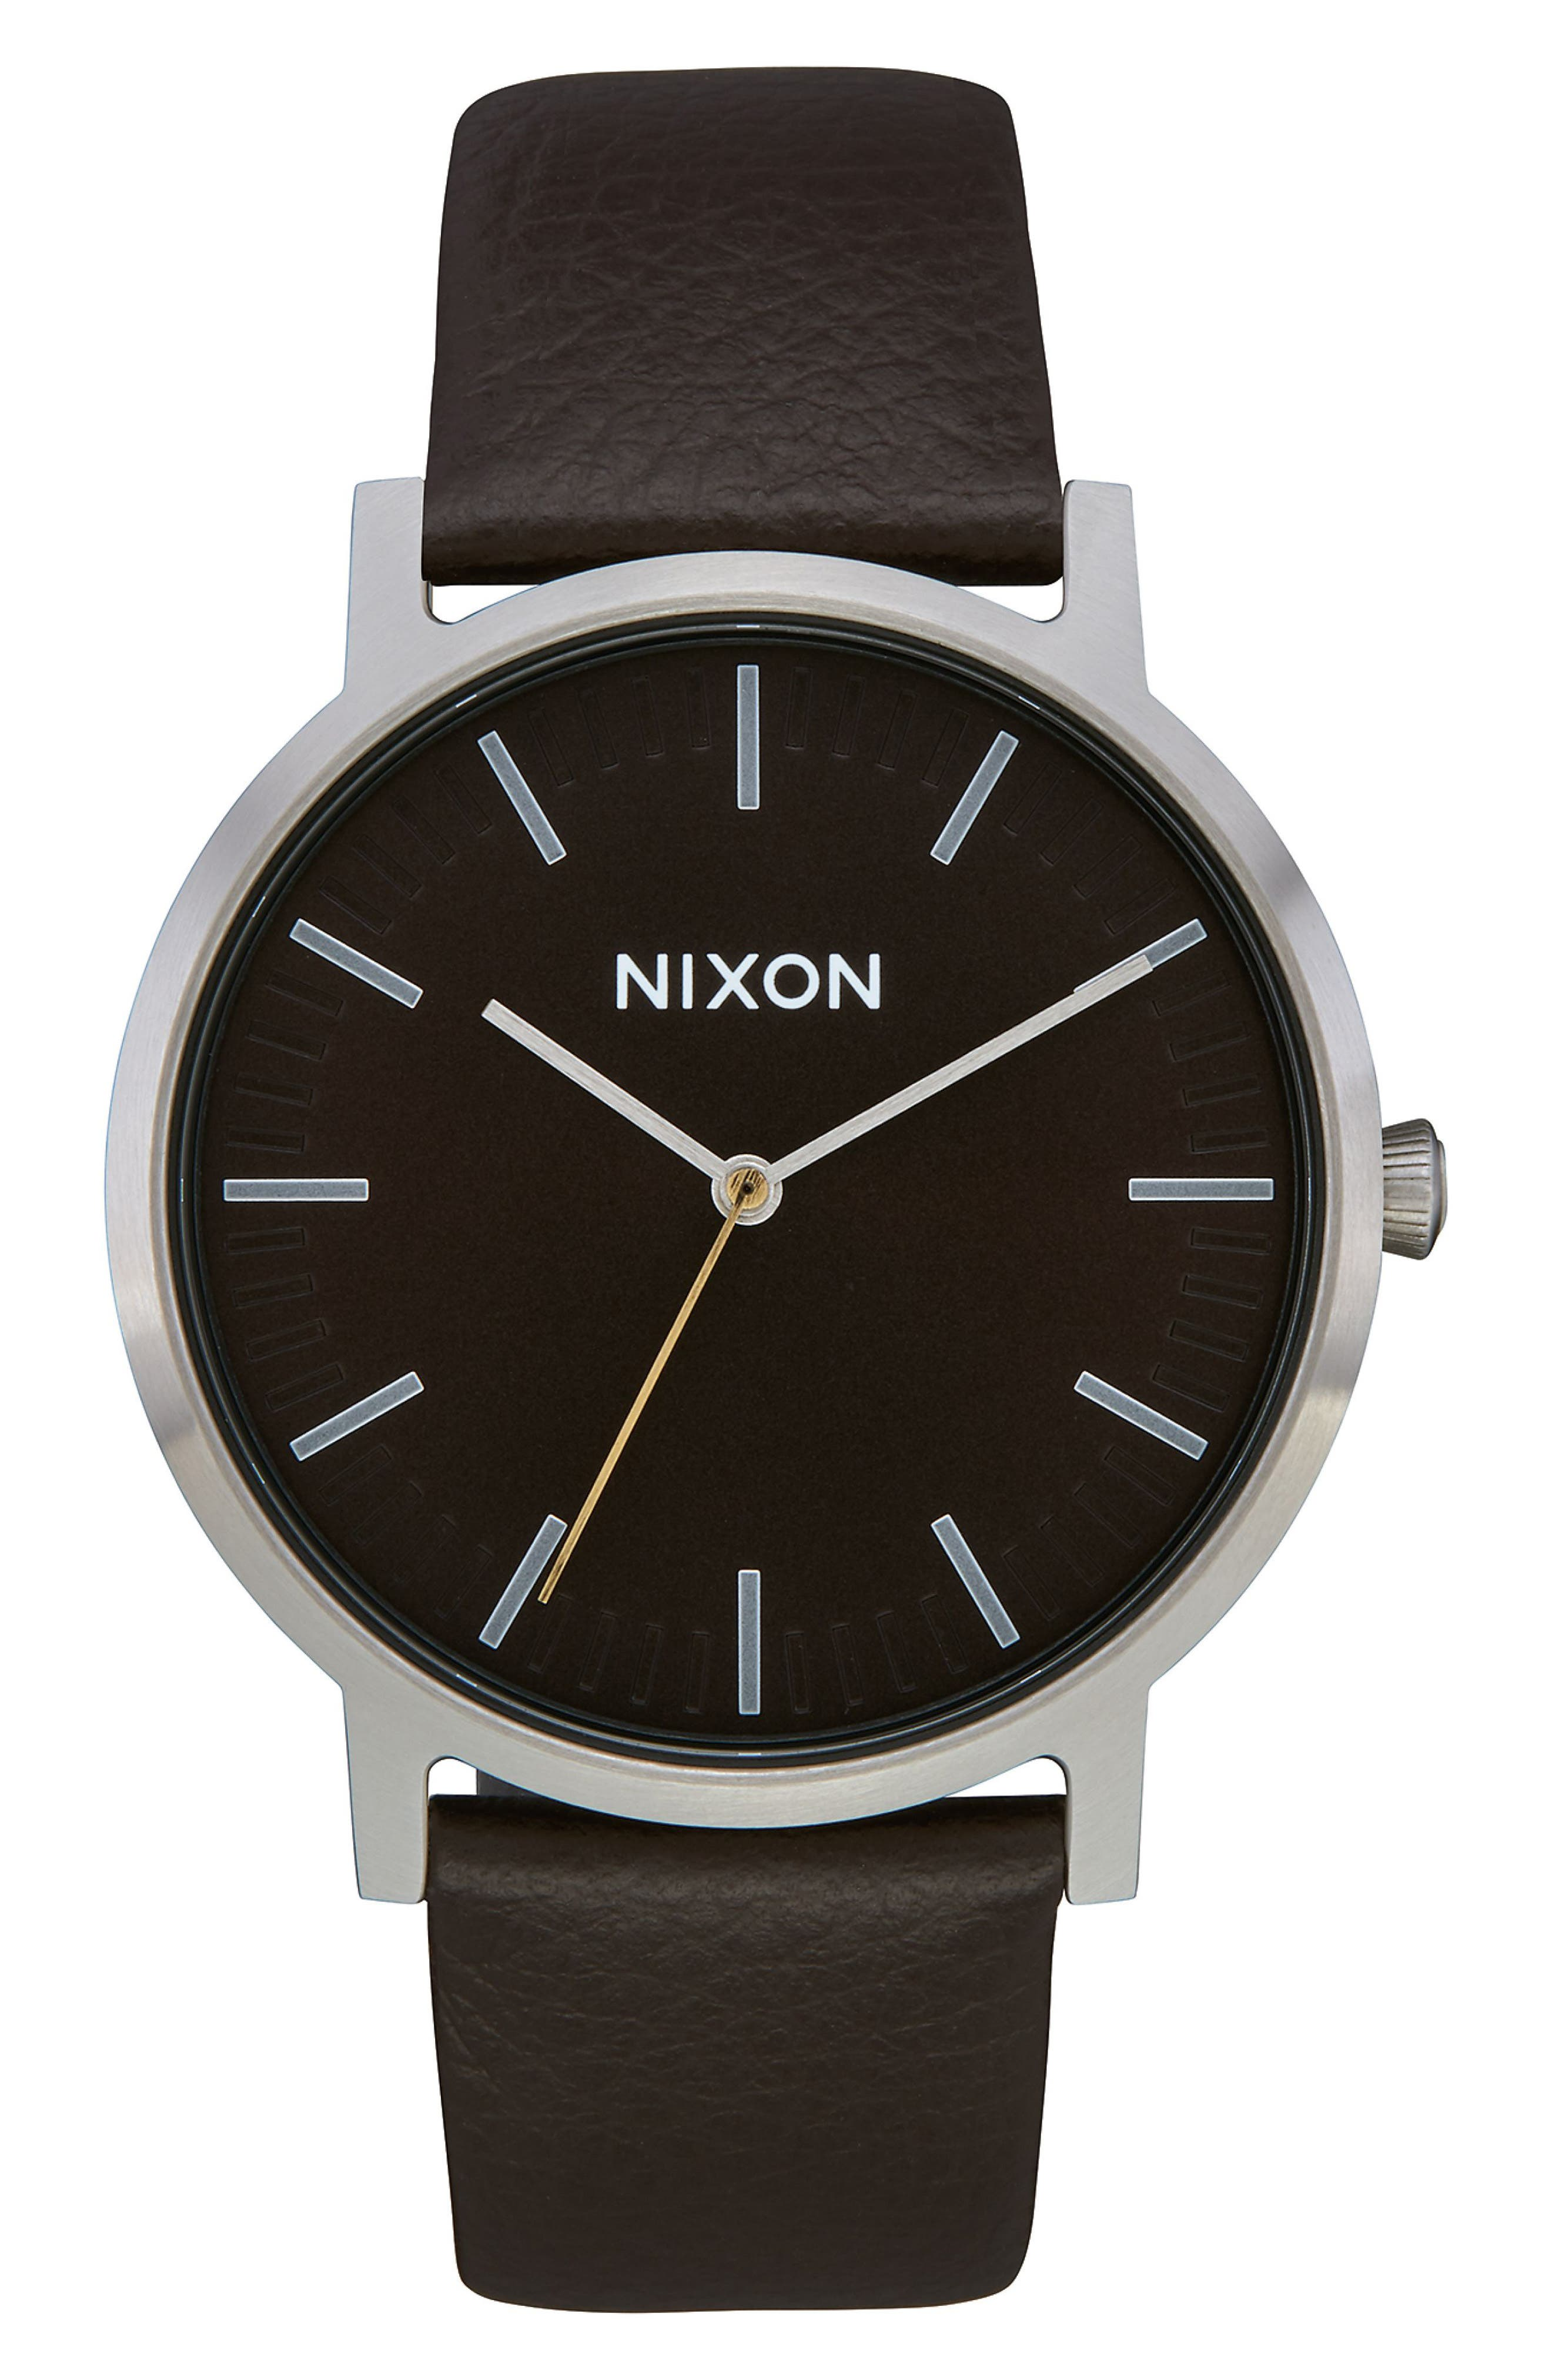 NIXON The Porter Leather Strap Watch, 40mm, Main, color, BROWN/ SILVER